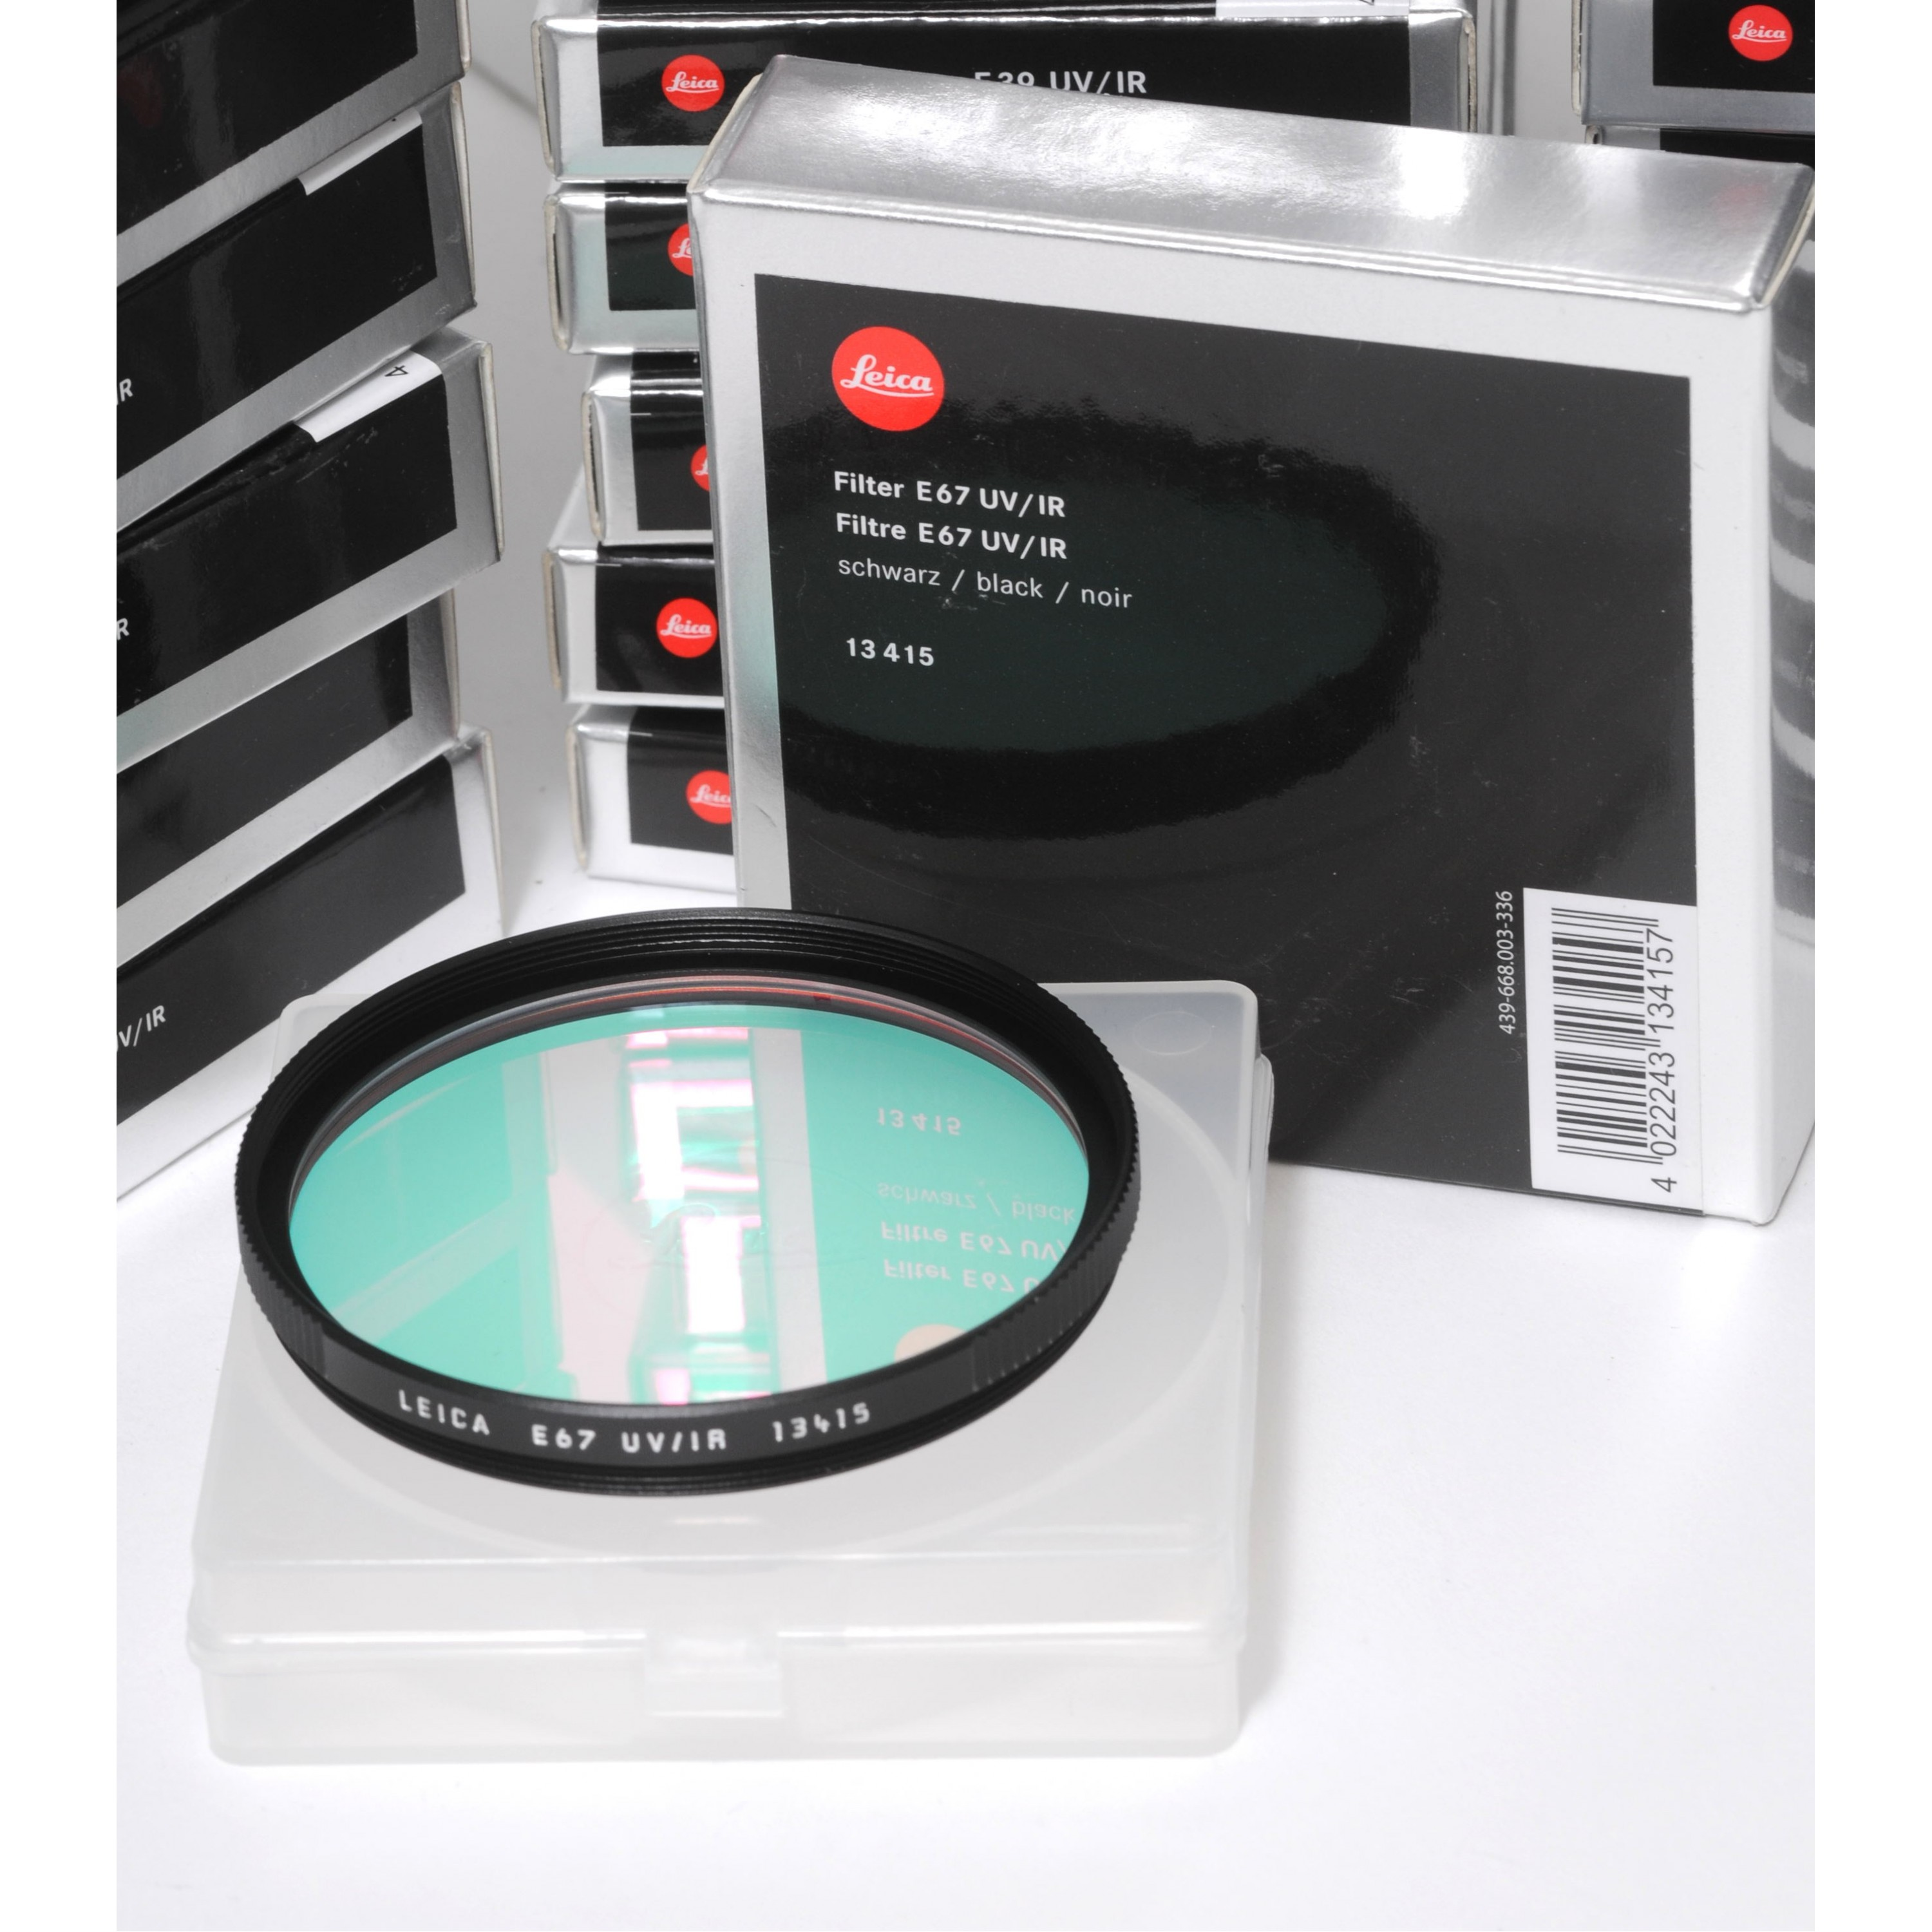 Leica Filter E67 UV/IR 13415